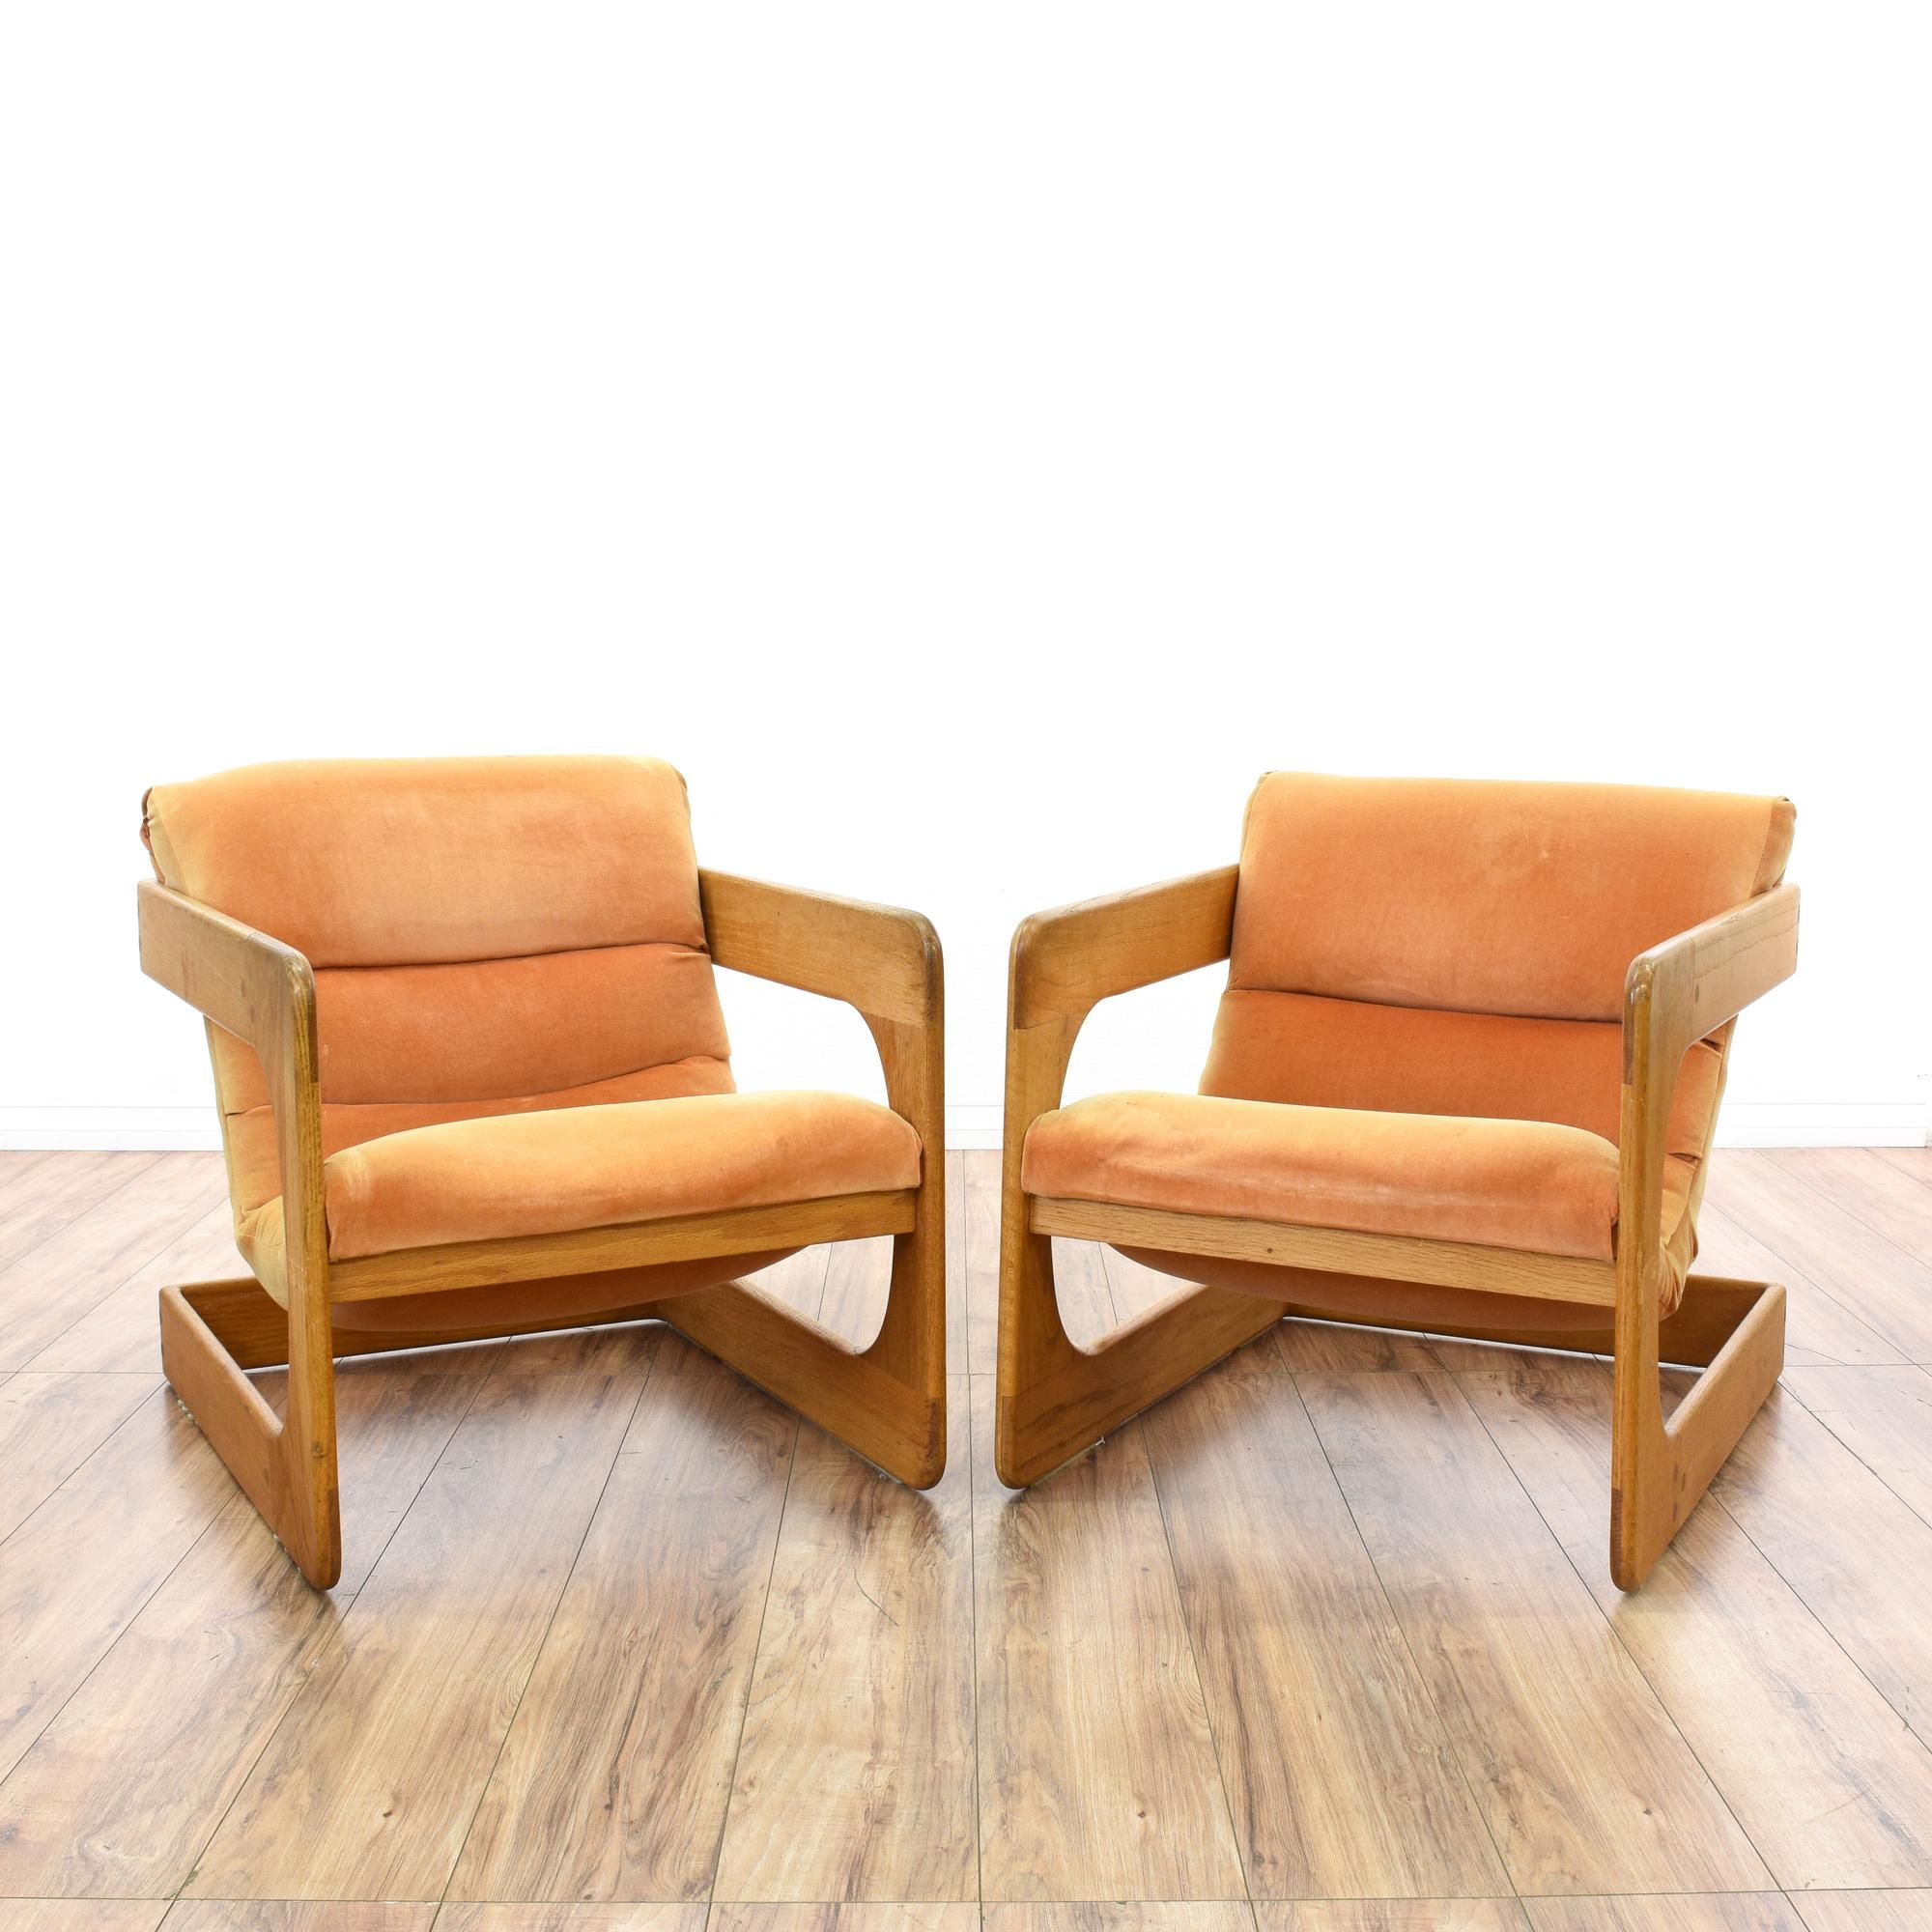 Wondrous This Pair Of 1970S Lou Hodges Sling Chairs Are Machost Co Dining Chair Design Ideas Machostcouk